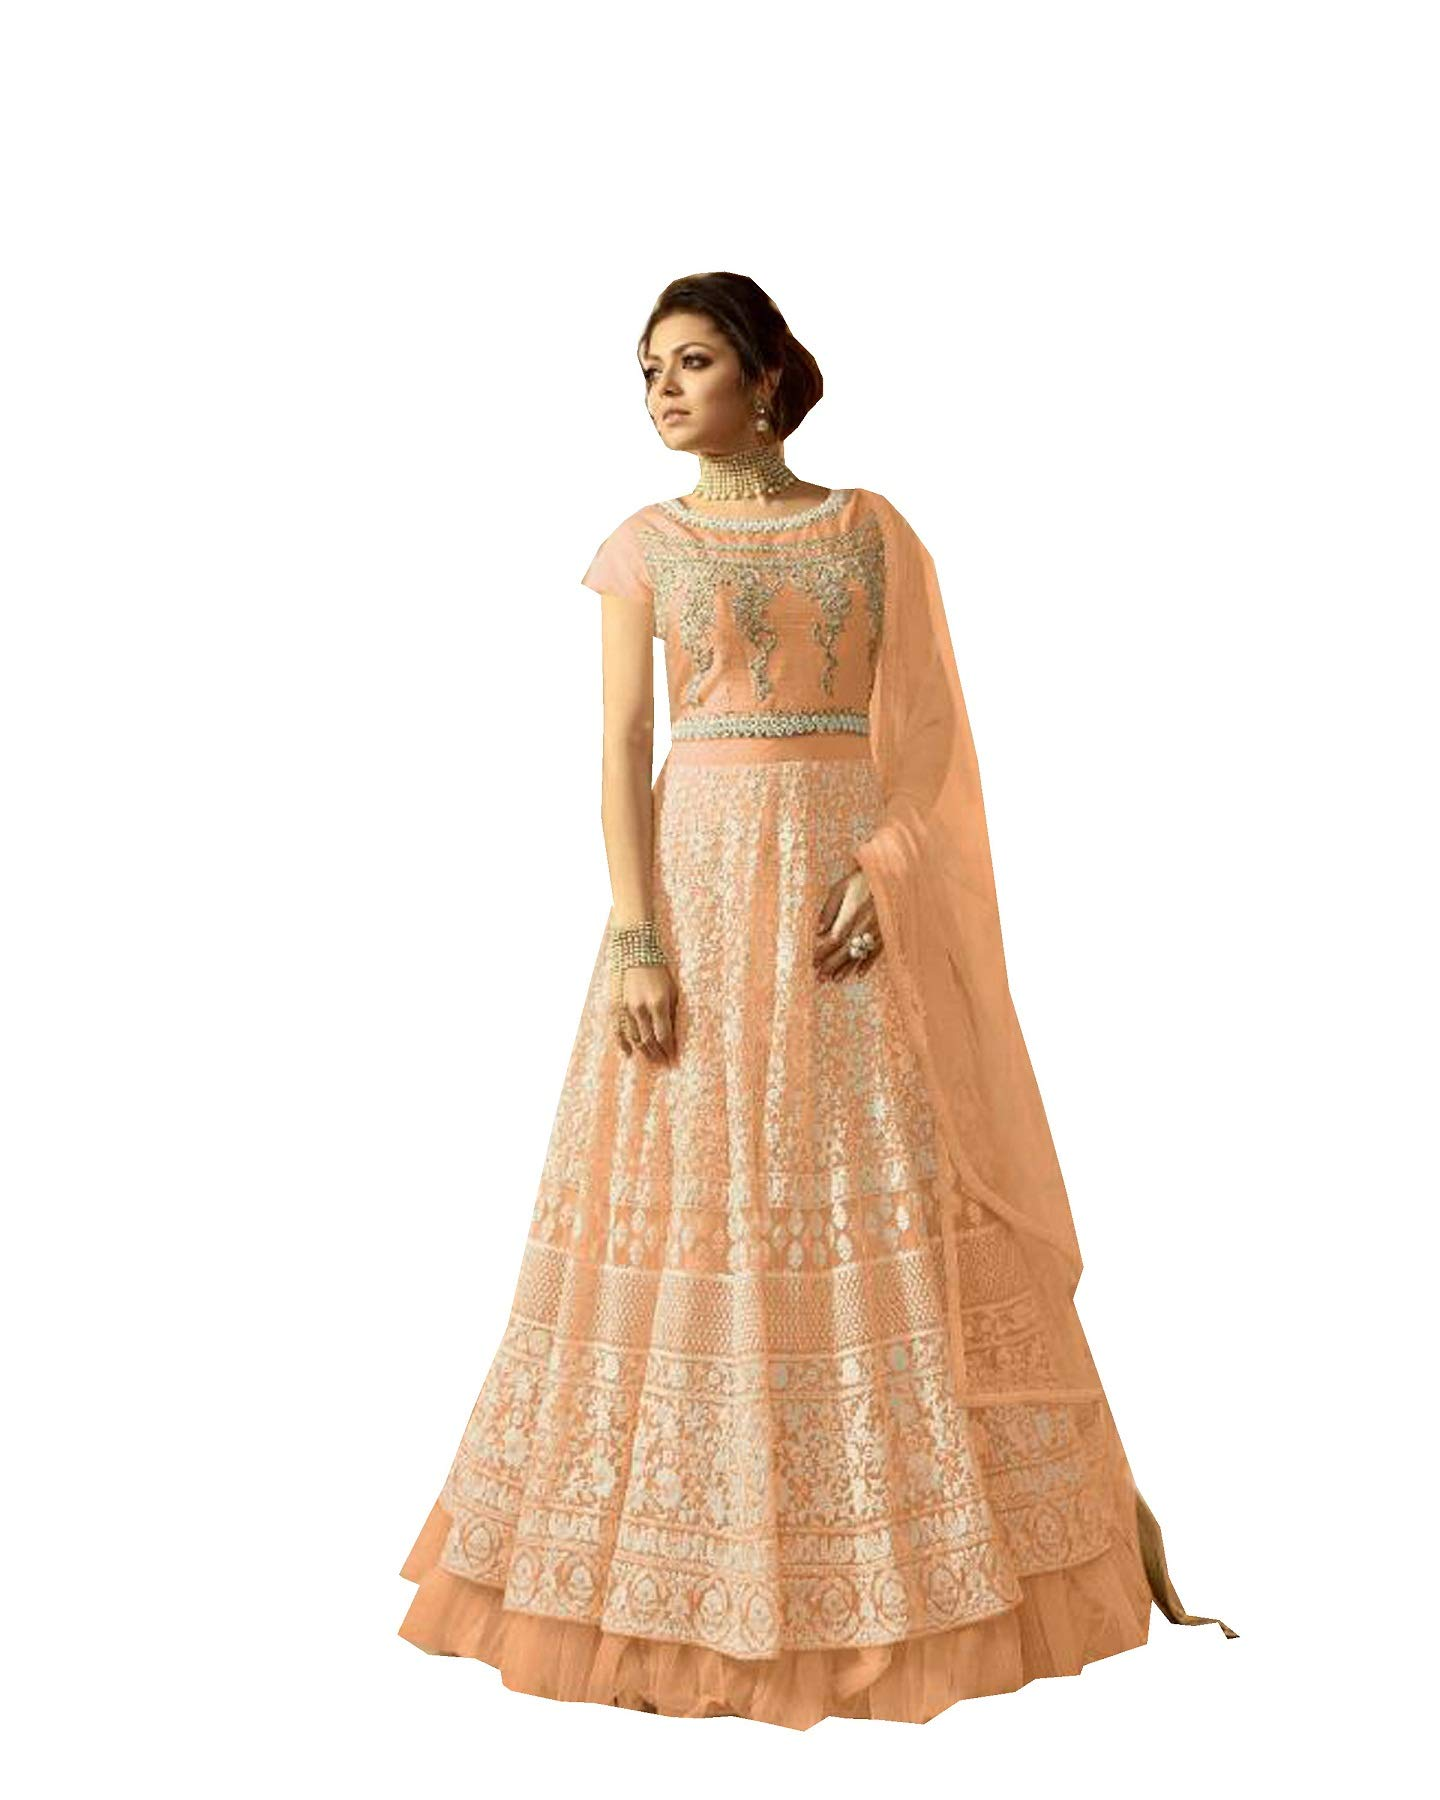 Queen Fashion New Indian Collectoin Woman Wear Embroidered Anarkali Gown LT 2804 (Peach, XL-44)